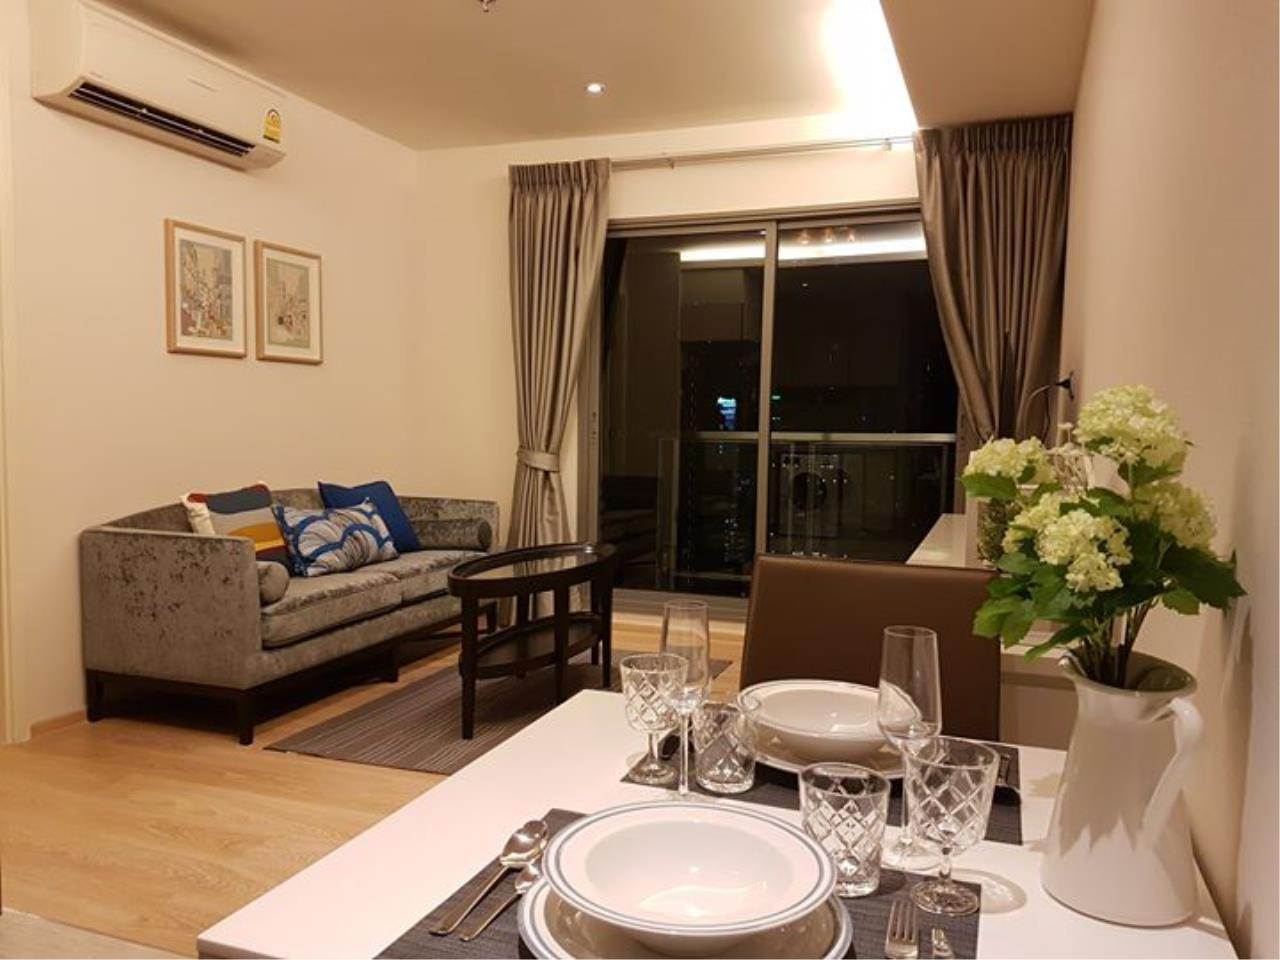 Century21 Skylux Agency's H Sukhumvit 43 / Condo For Rent / 1 Bedroom / 43 SQM / BTS Phrom Phong / Bangkok 1